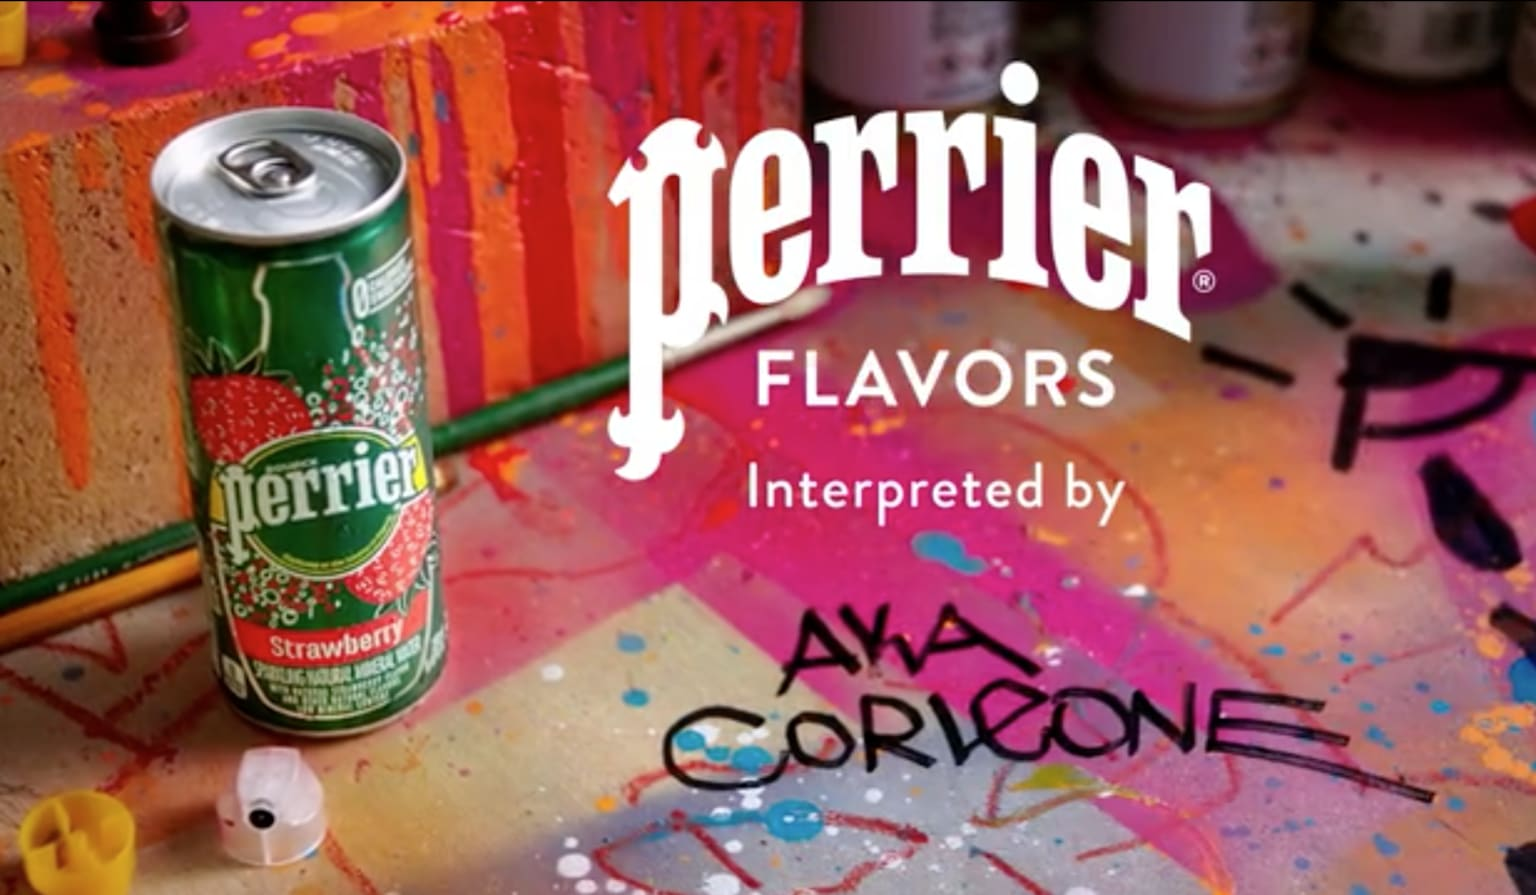 PERRIER FLAVORS BY AKACORLEONE